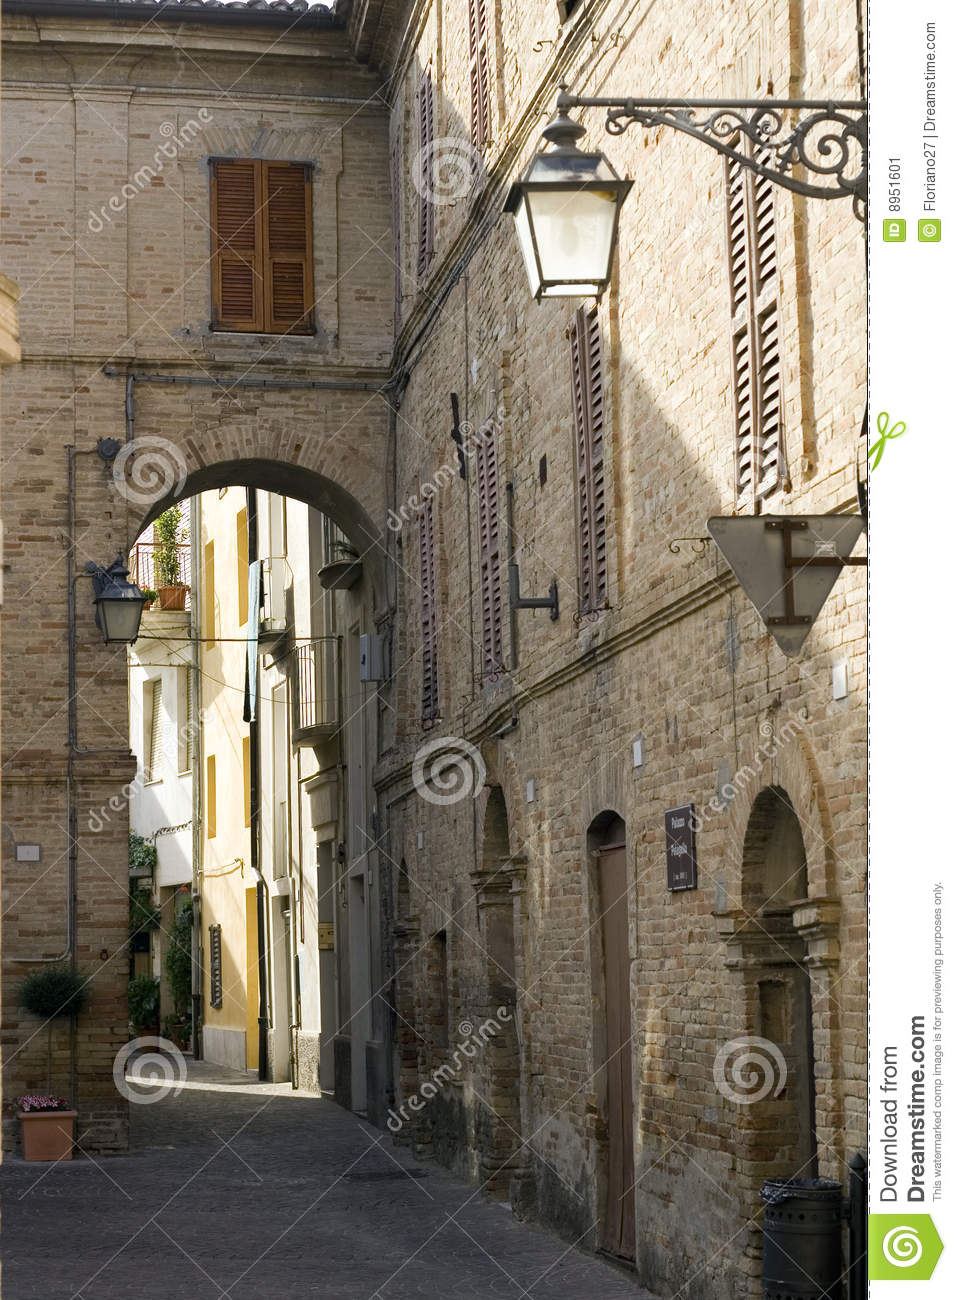 Small Italian Village Stock Image  Image 8951601